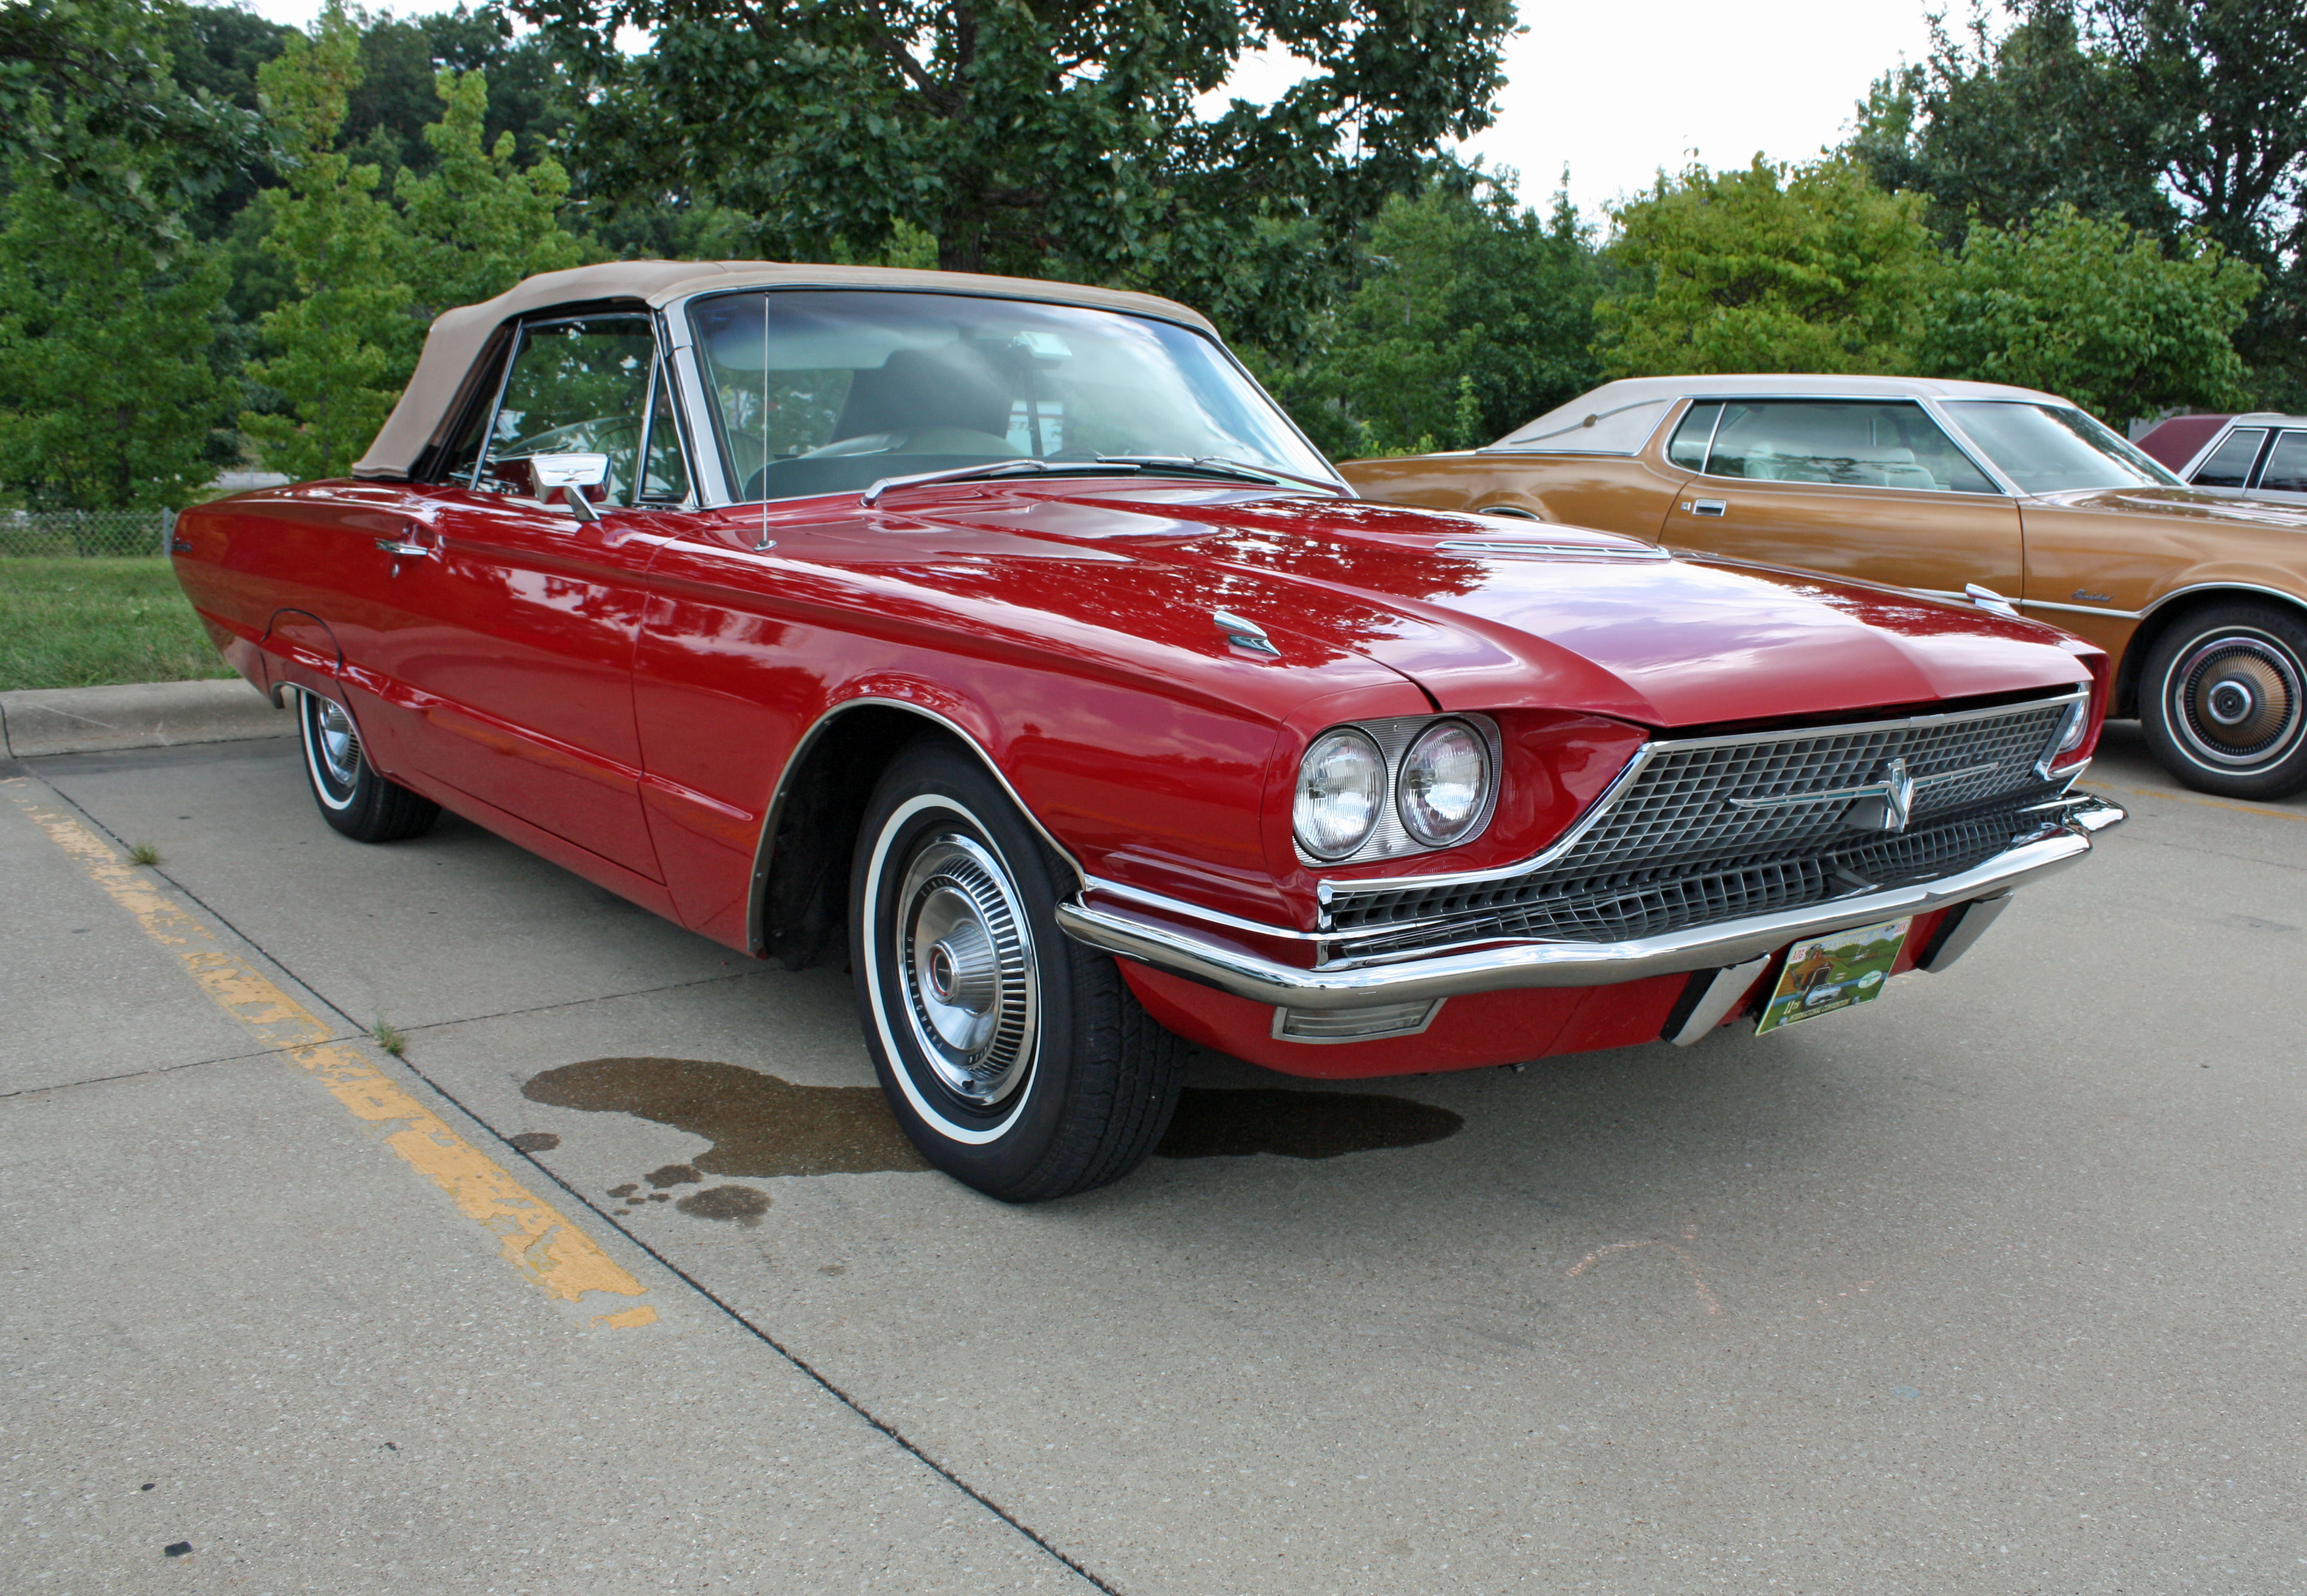 Ford Thunderbird Project Cars For Sale